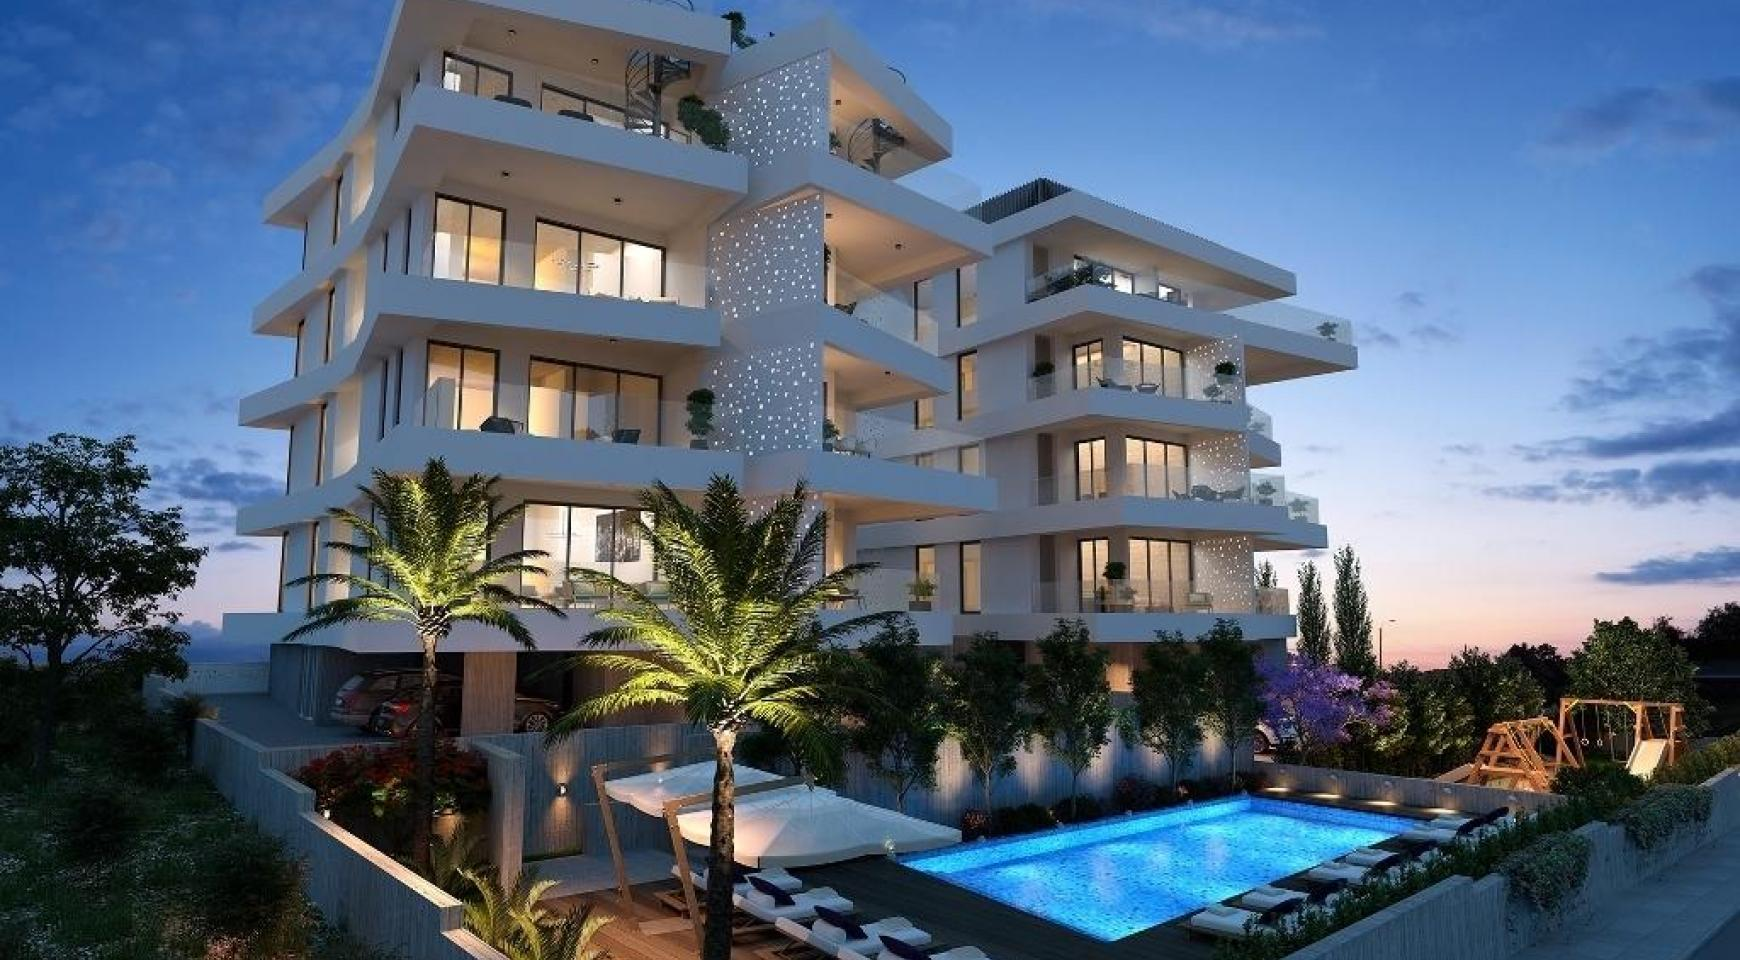 New 3 Bedroom Penthouse in a Contemporary Complex in Germasogeia - 1